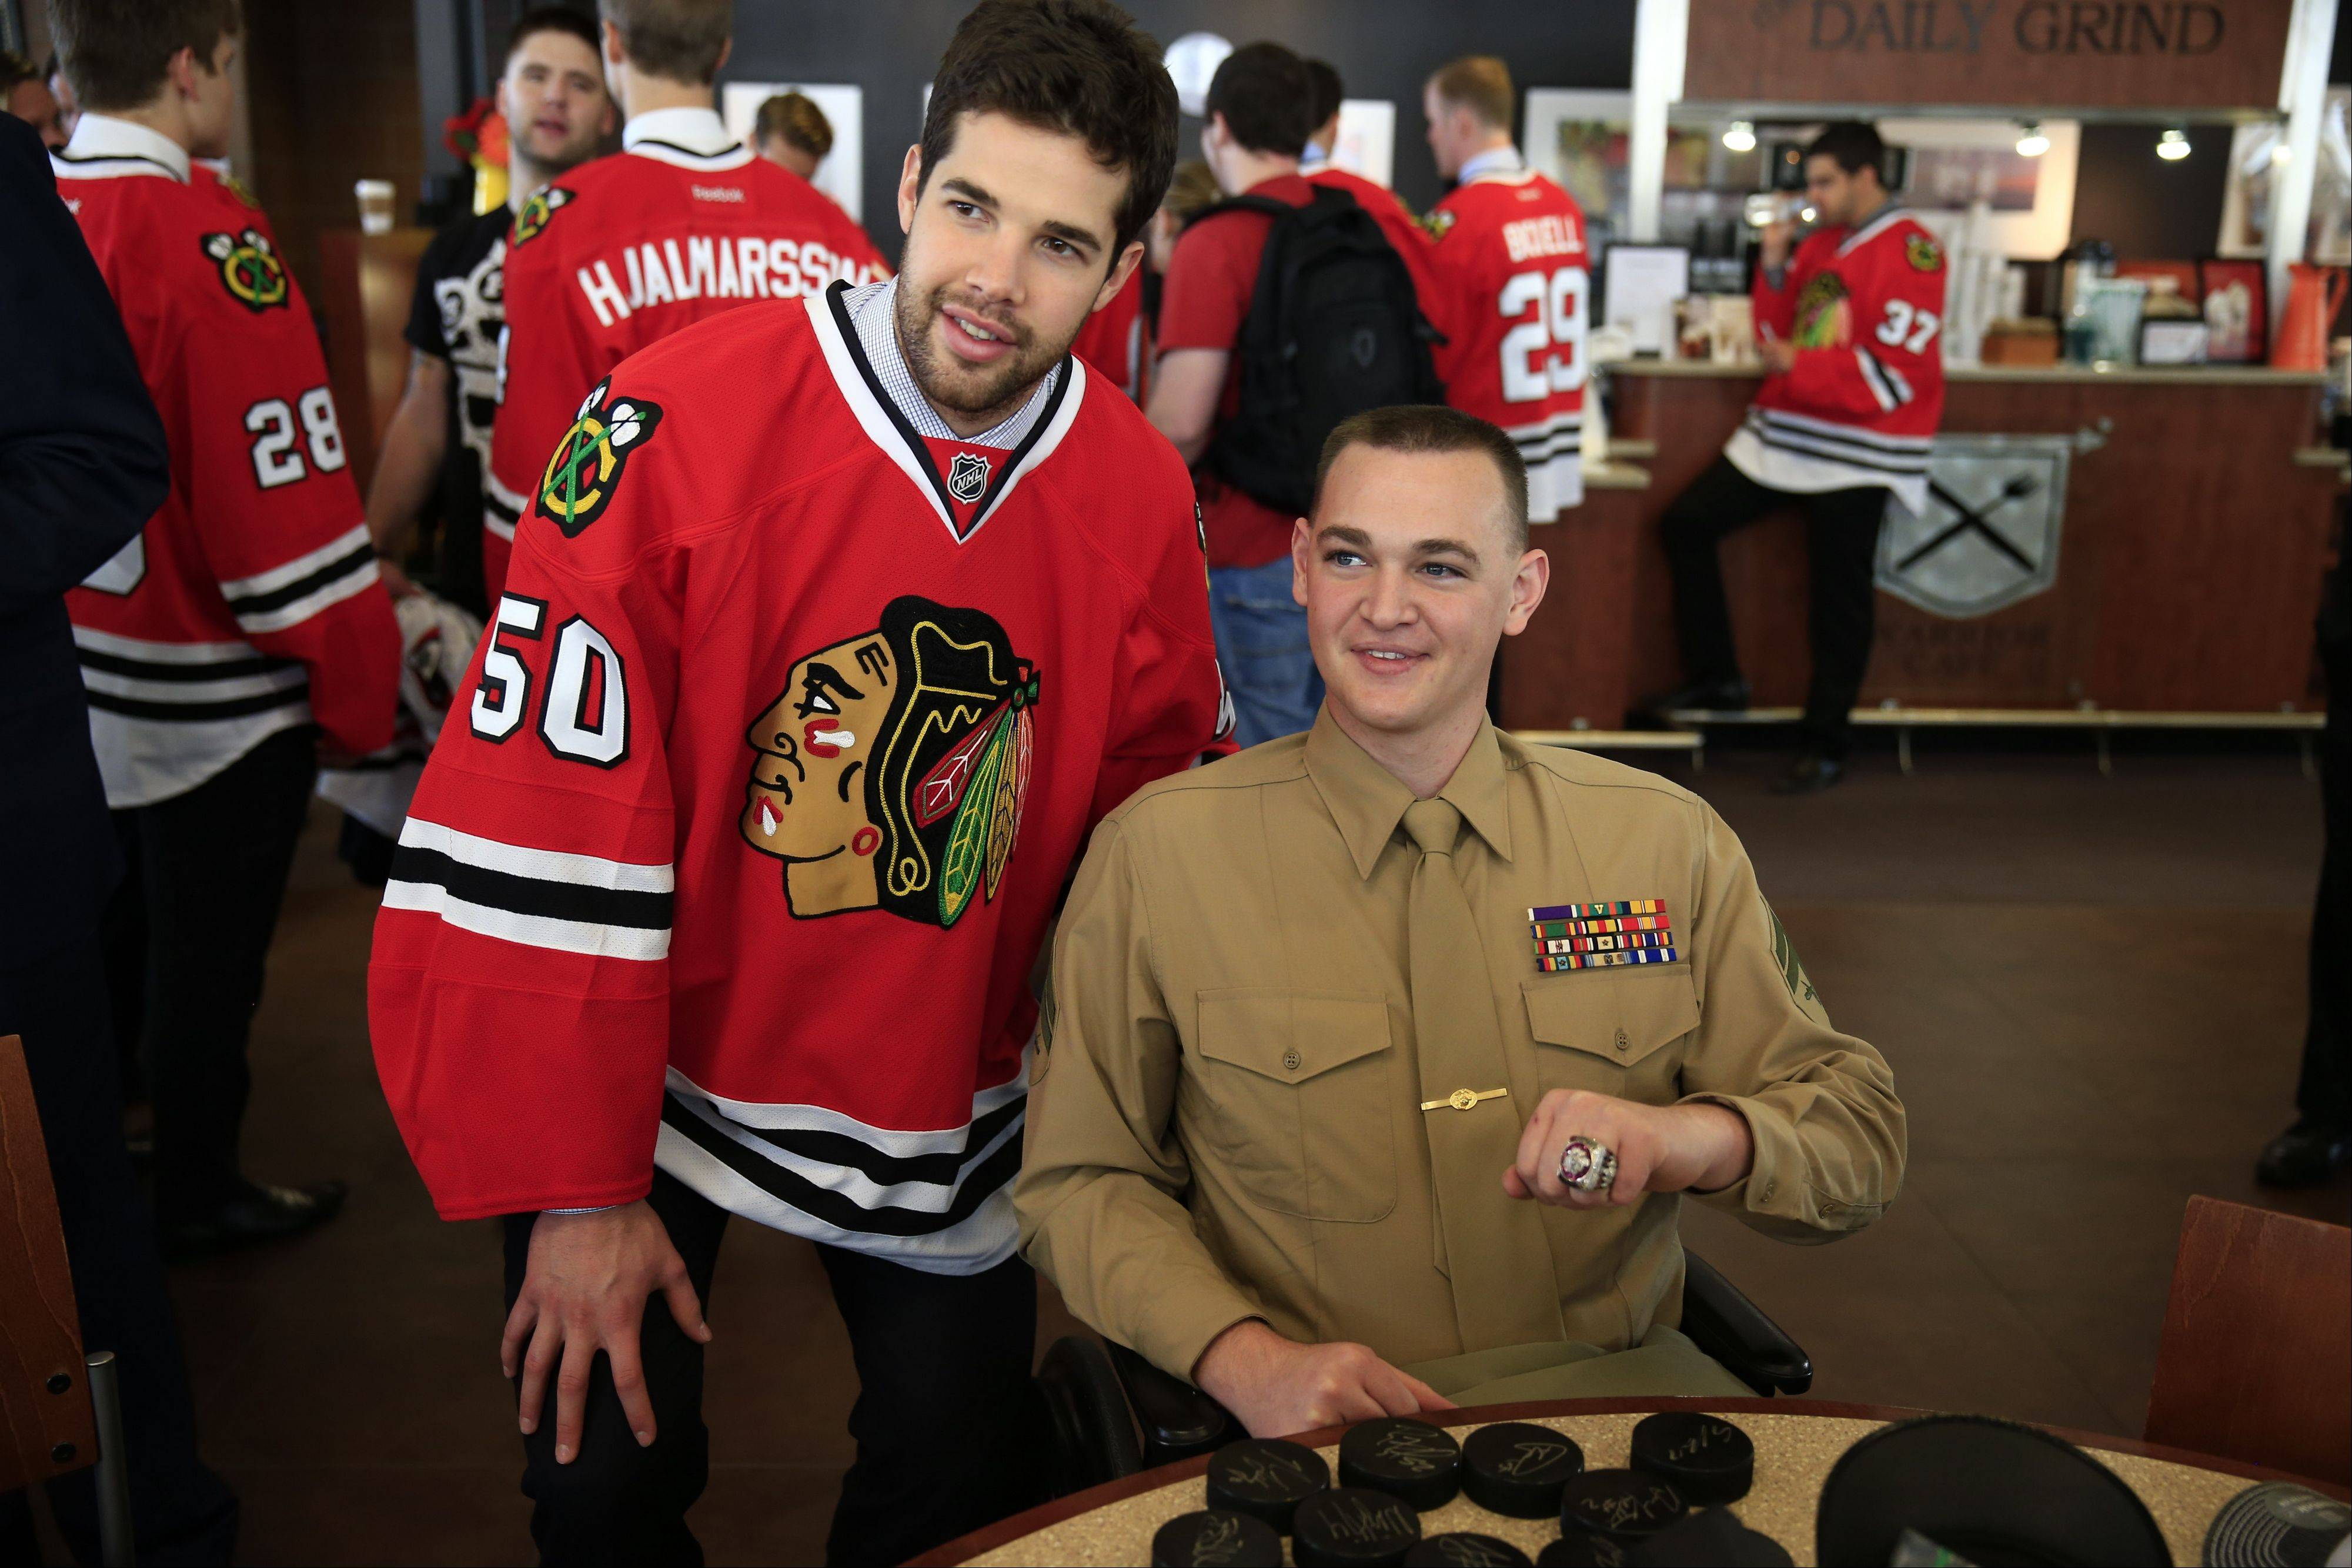 The Blackhawks visited Walter Reed National Military Medical Center yesterday on an off day and greeted war veterans.